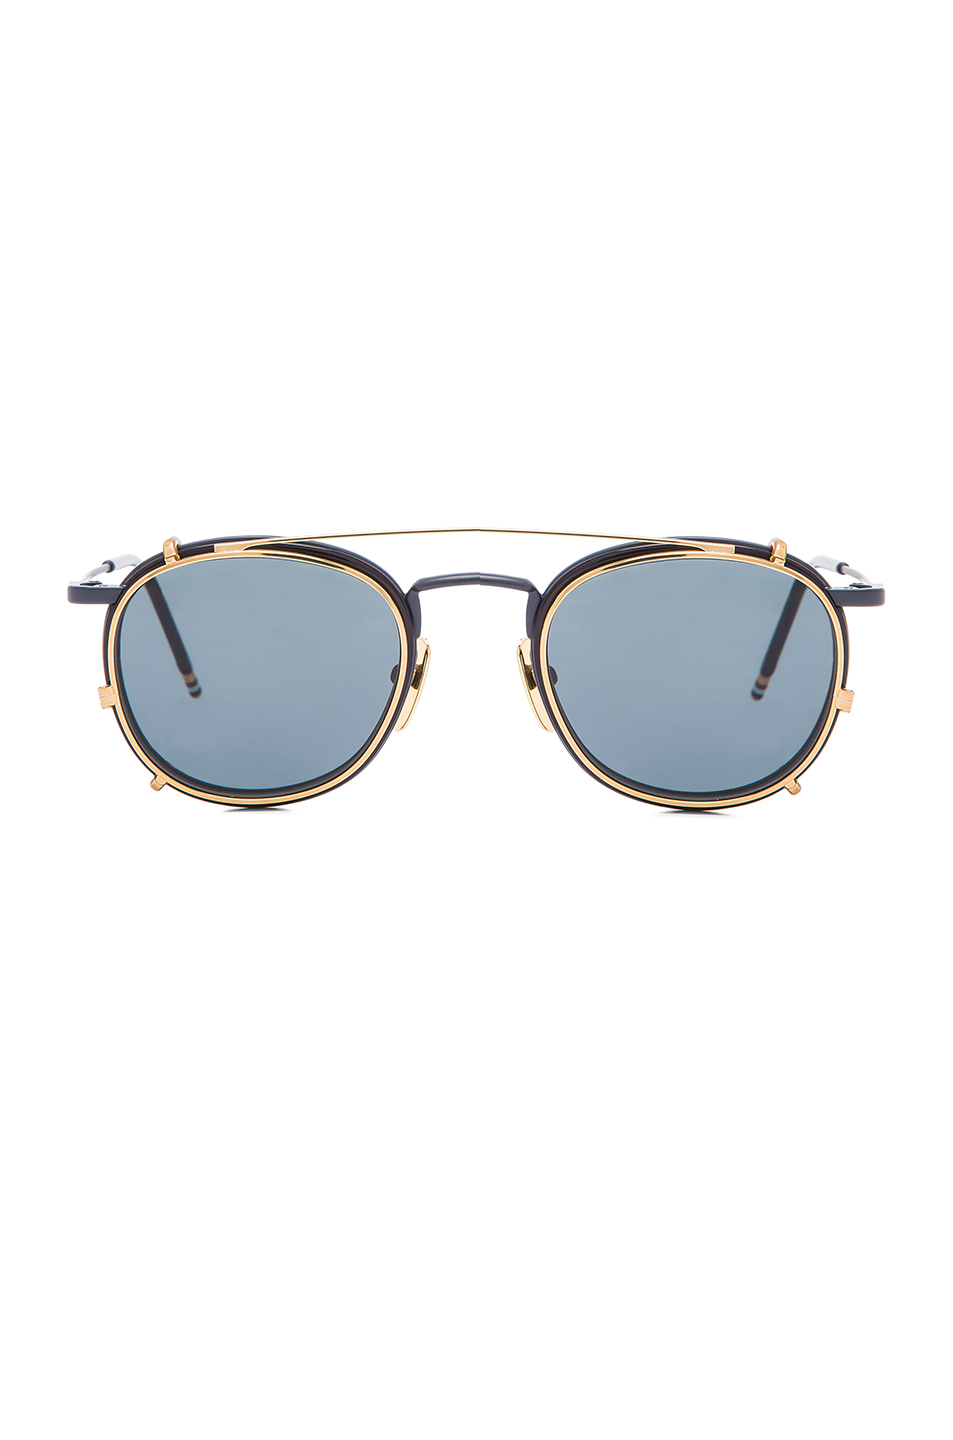 5f120038258 Lyst - Thom Browne Men S Clip On Sunglasses in Blue